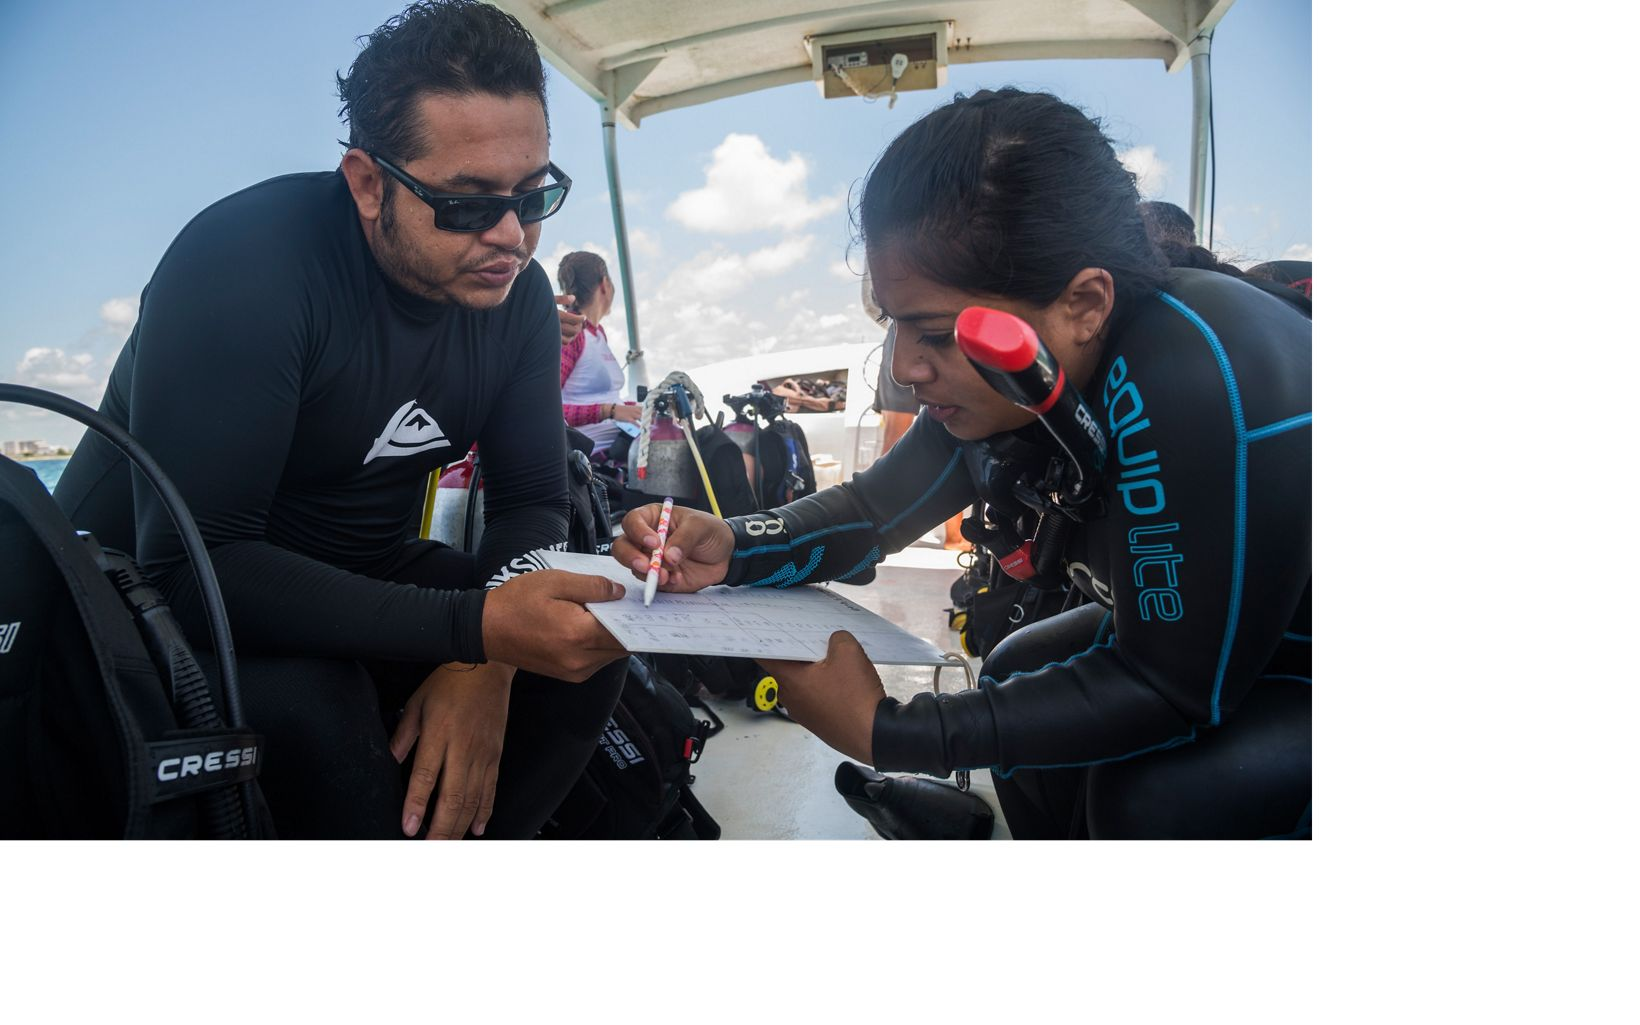 Two divers sit on a boat and work together over a paper on a clipboard.